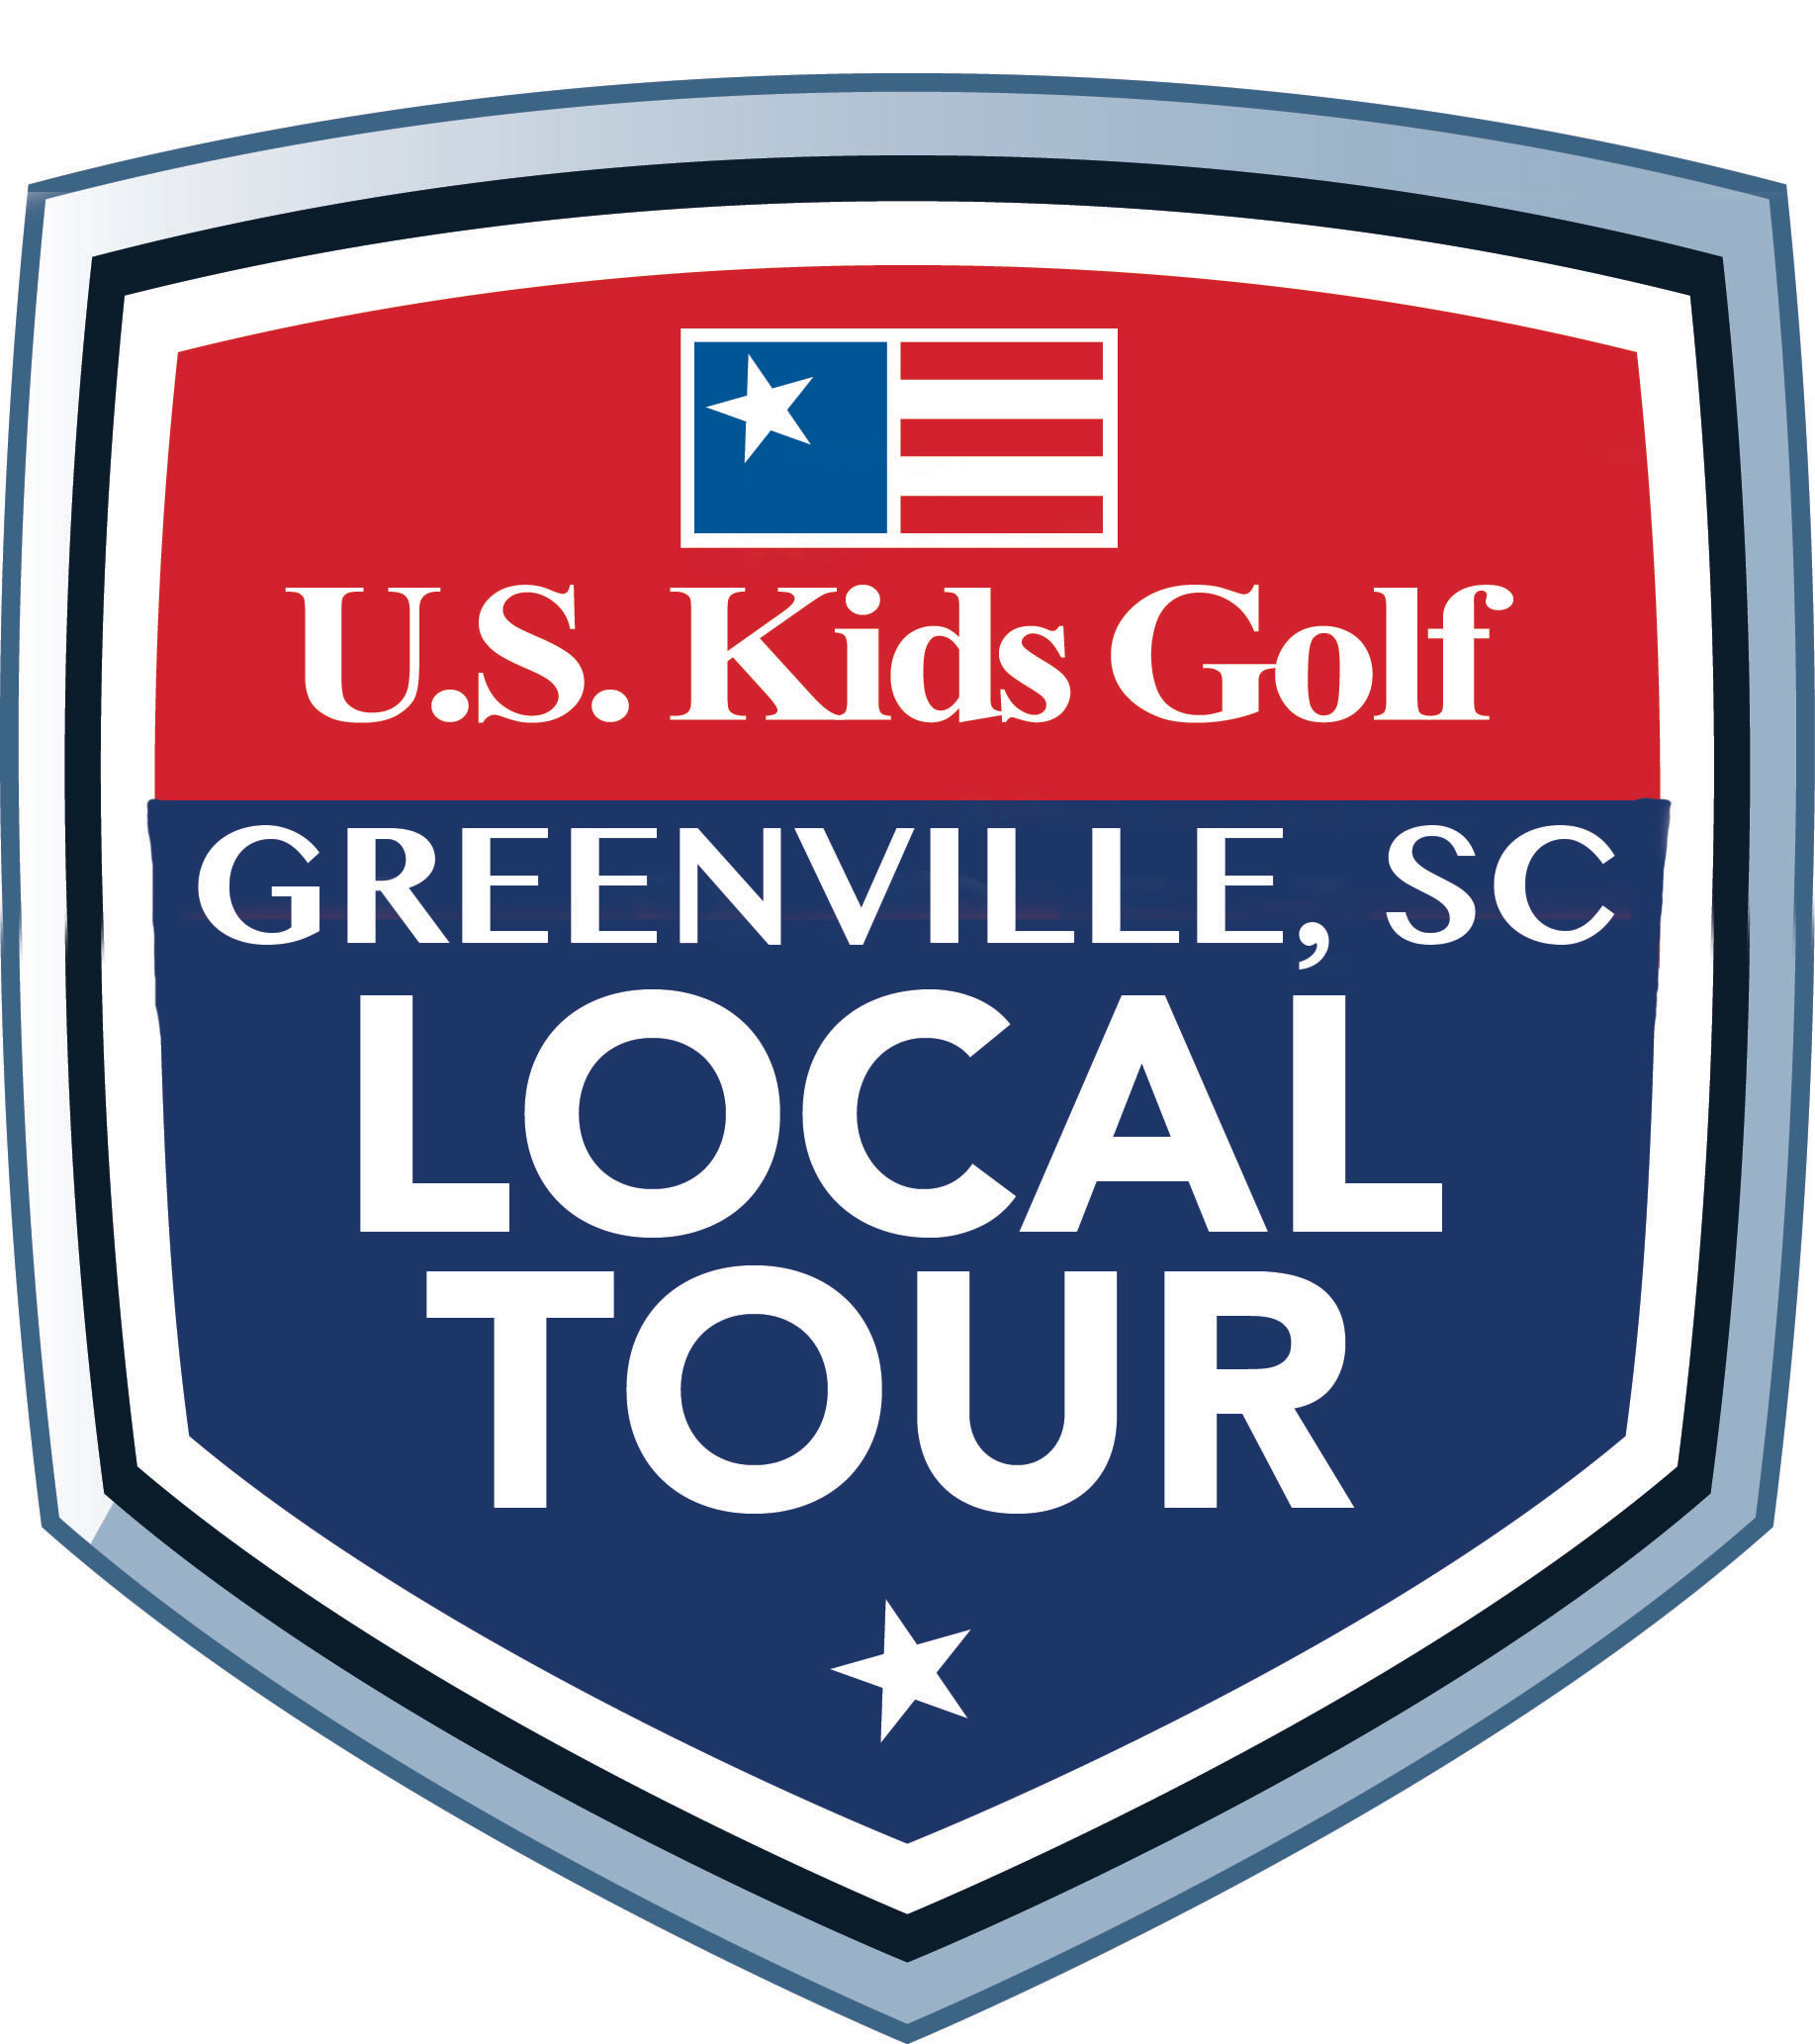 US Kids Golf Greenville Tour